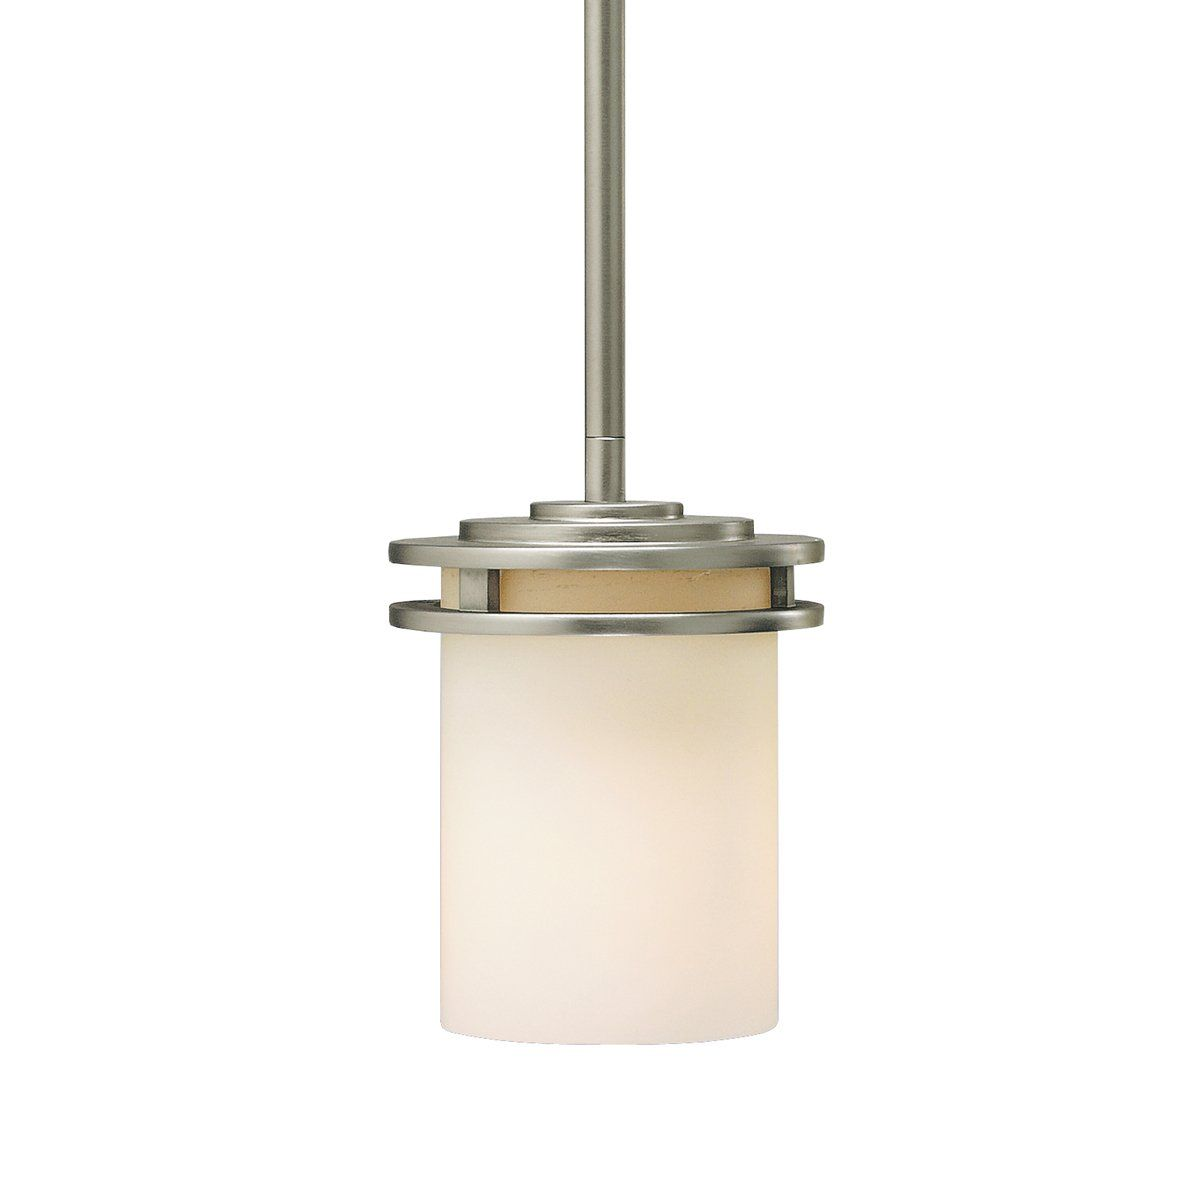 Kichler lighting hendrik mini pendant lighting universe